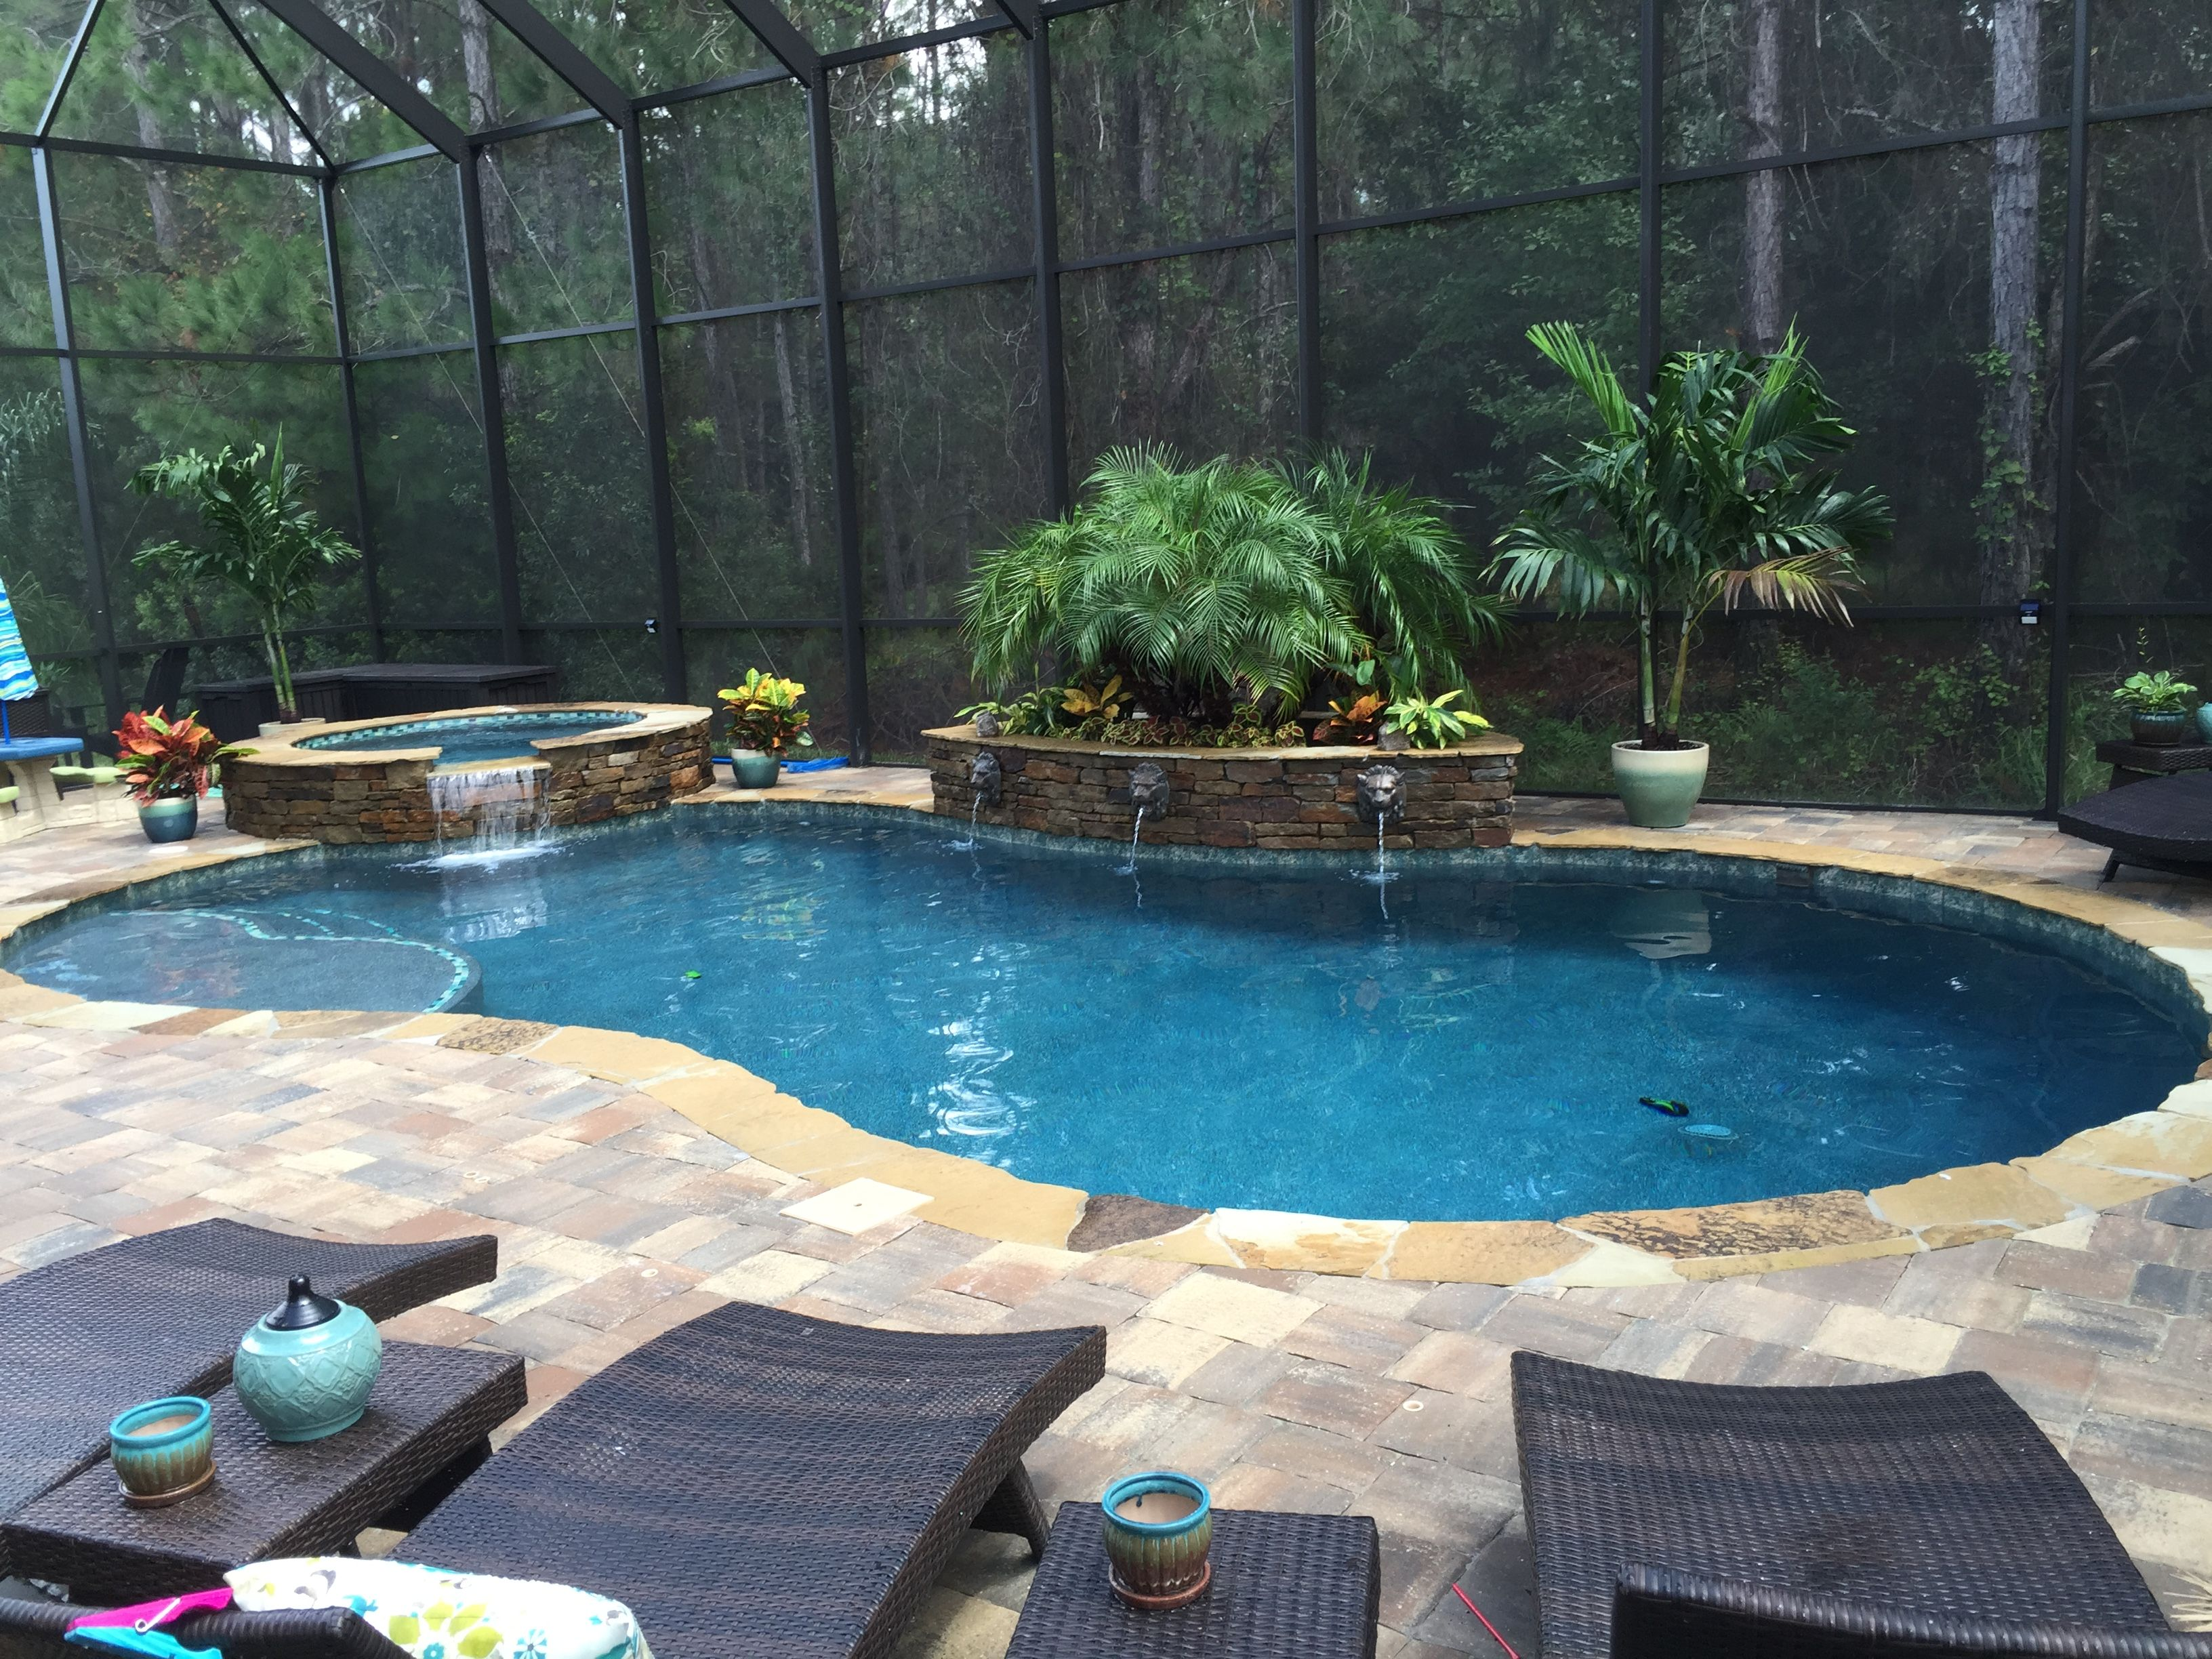 Custom Pool, Spa, Screen Enclosure By Poolside Designs